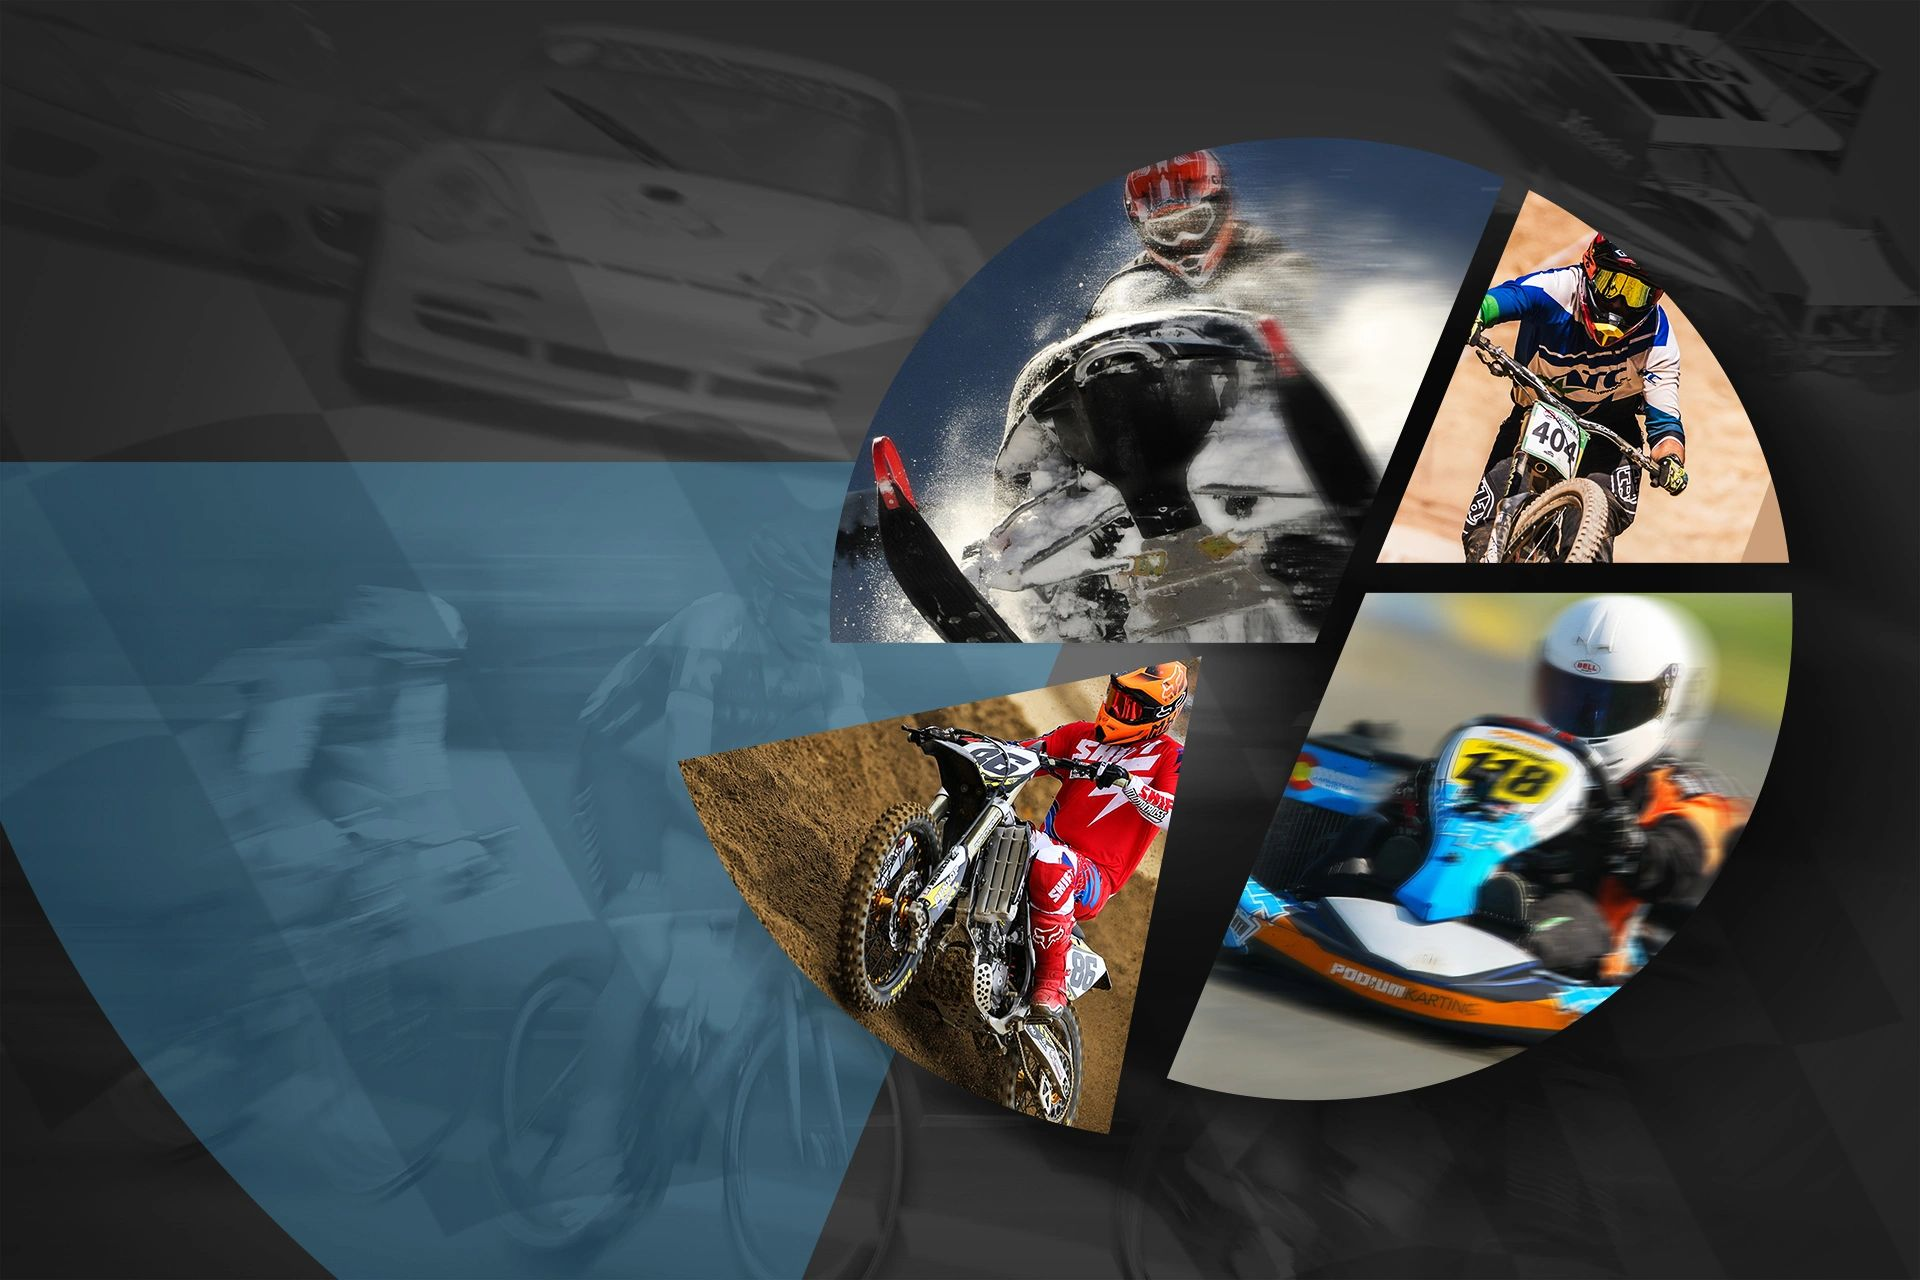 Hi-Performance RFID scoring and timing systems for snowmobile, motocross, karting, racing and more.